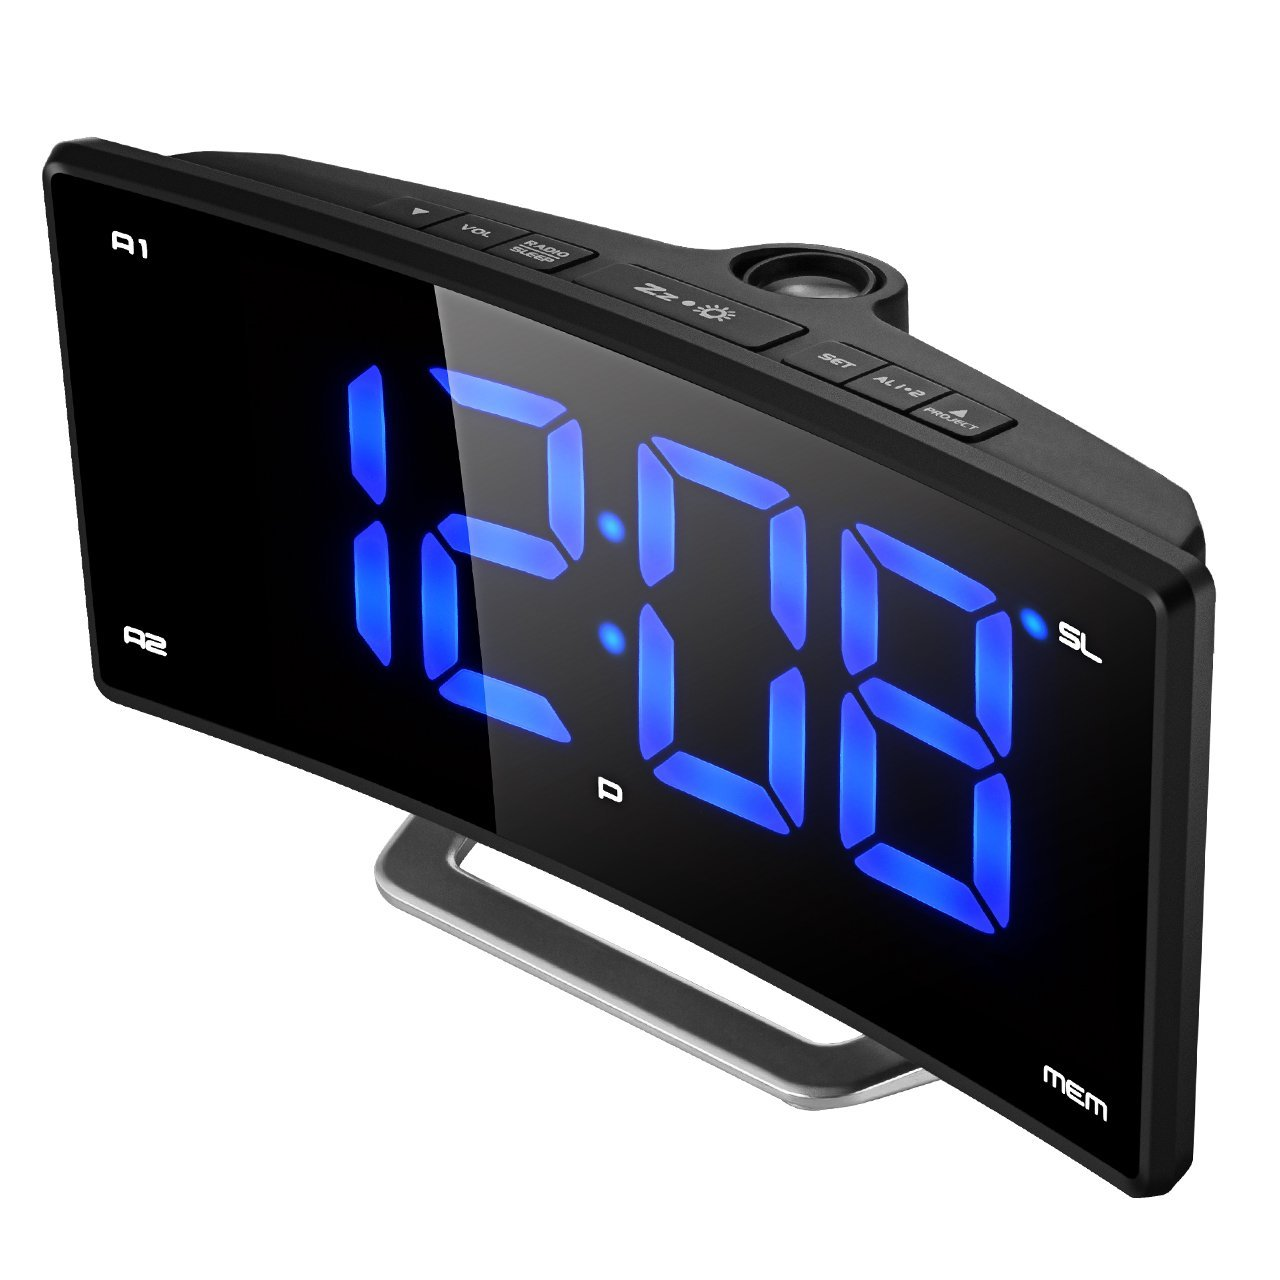 "Projection Clock, (New Version) Pictek FM Projection Alarm Clock, 2"" LED Display Curved-Screen Digital FM Clock Radio with Dual Alarms, 12/24 Hour, USB Charging, Battery Backup"